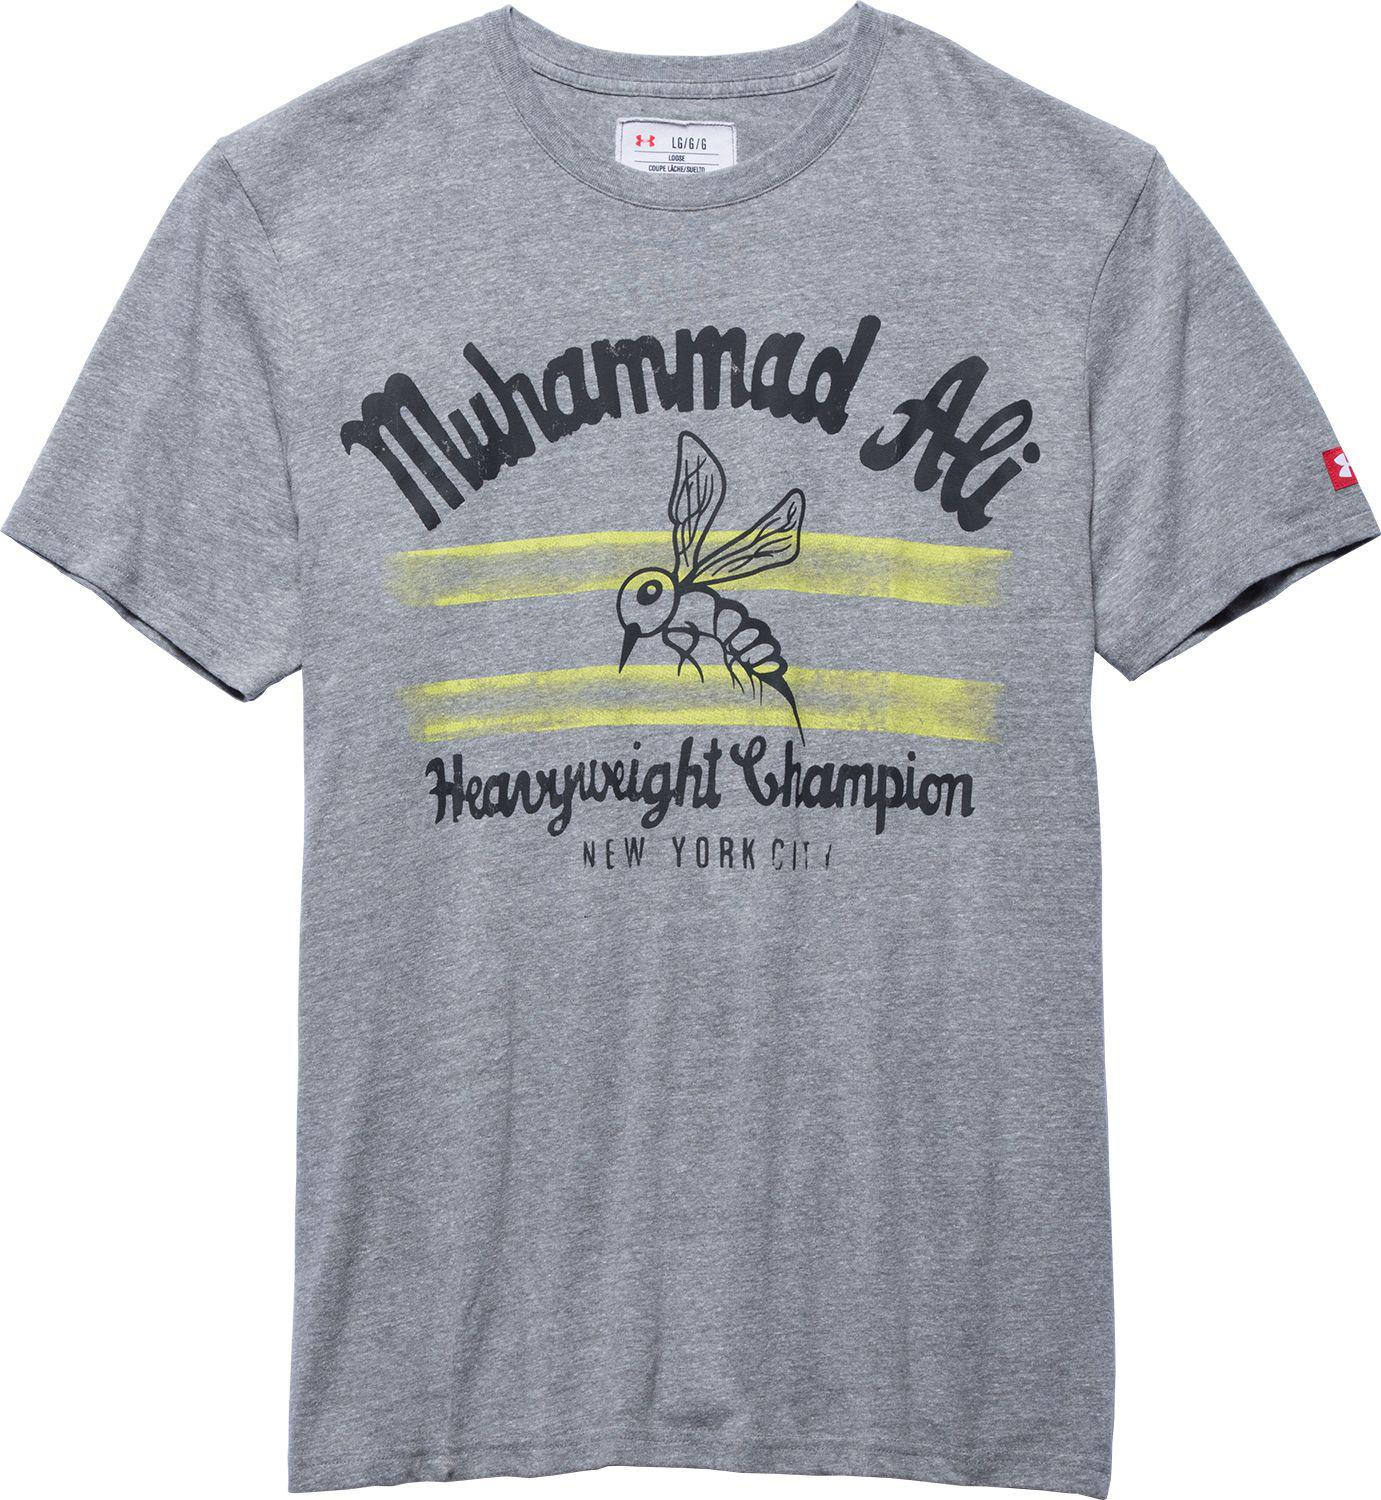 d4064910 Under Armour Roots Of Fight Muhammad Ali Bee Graphic T-shirt in Gray ...